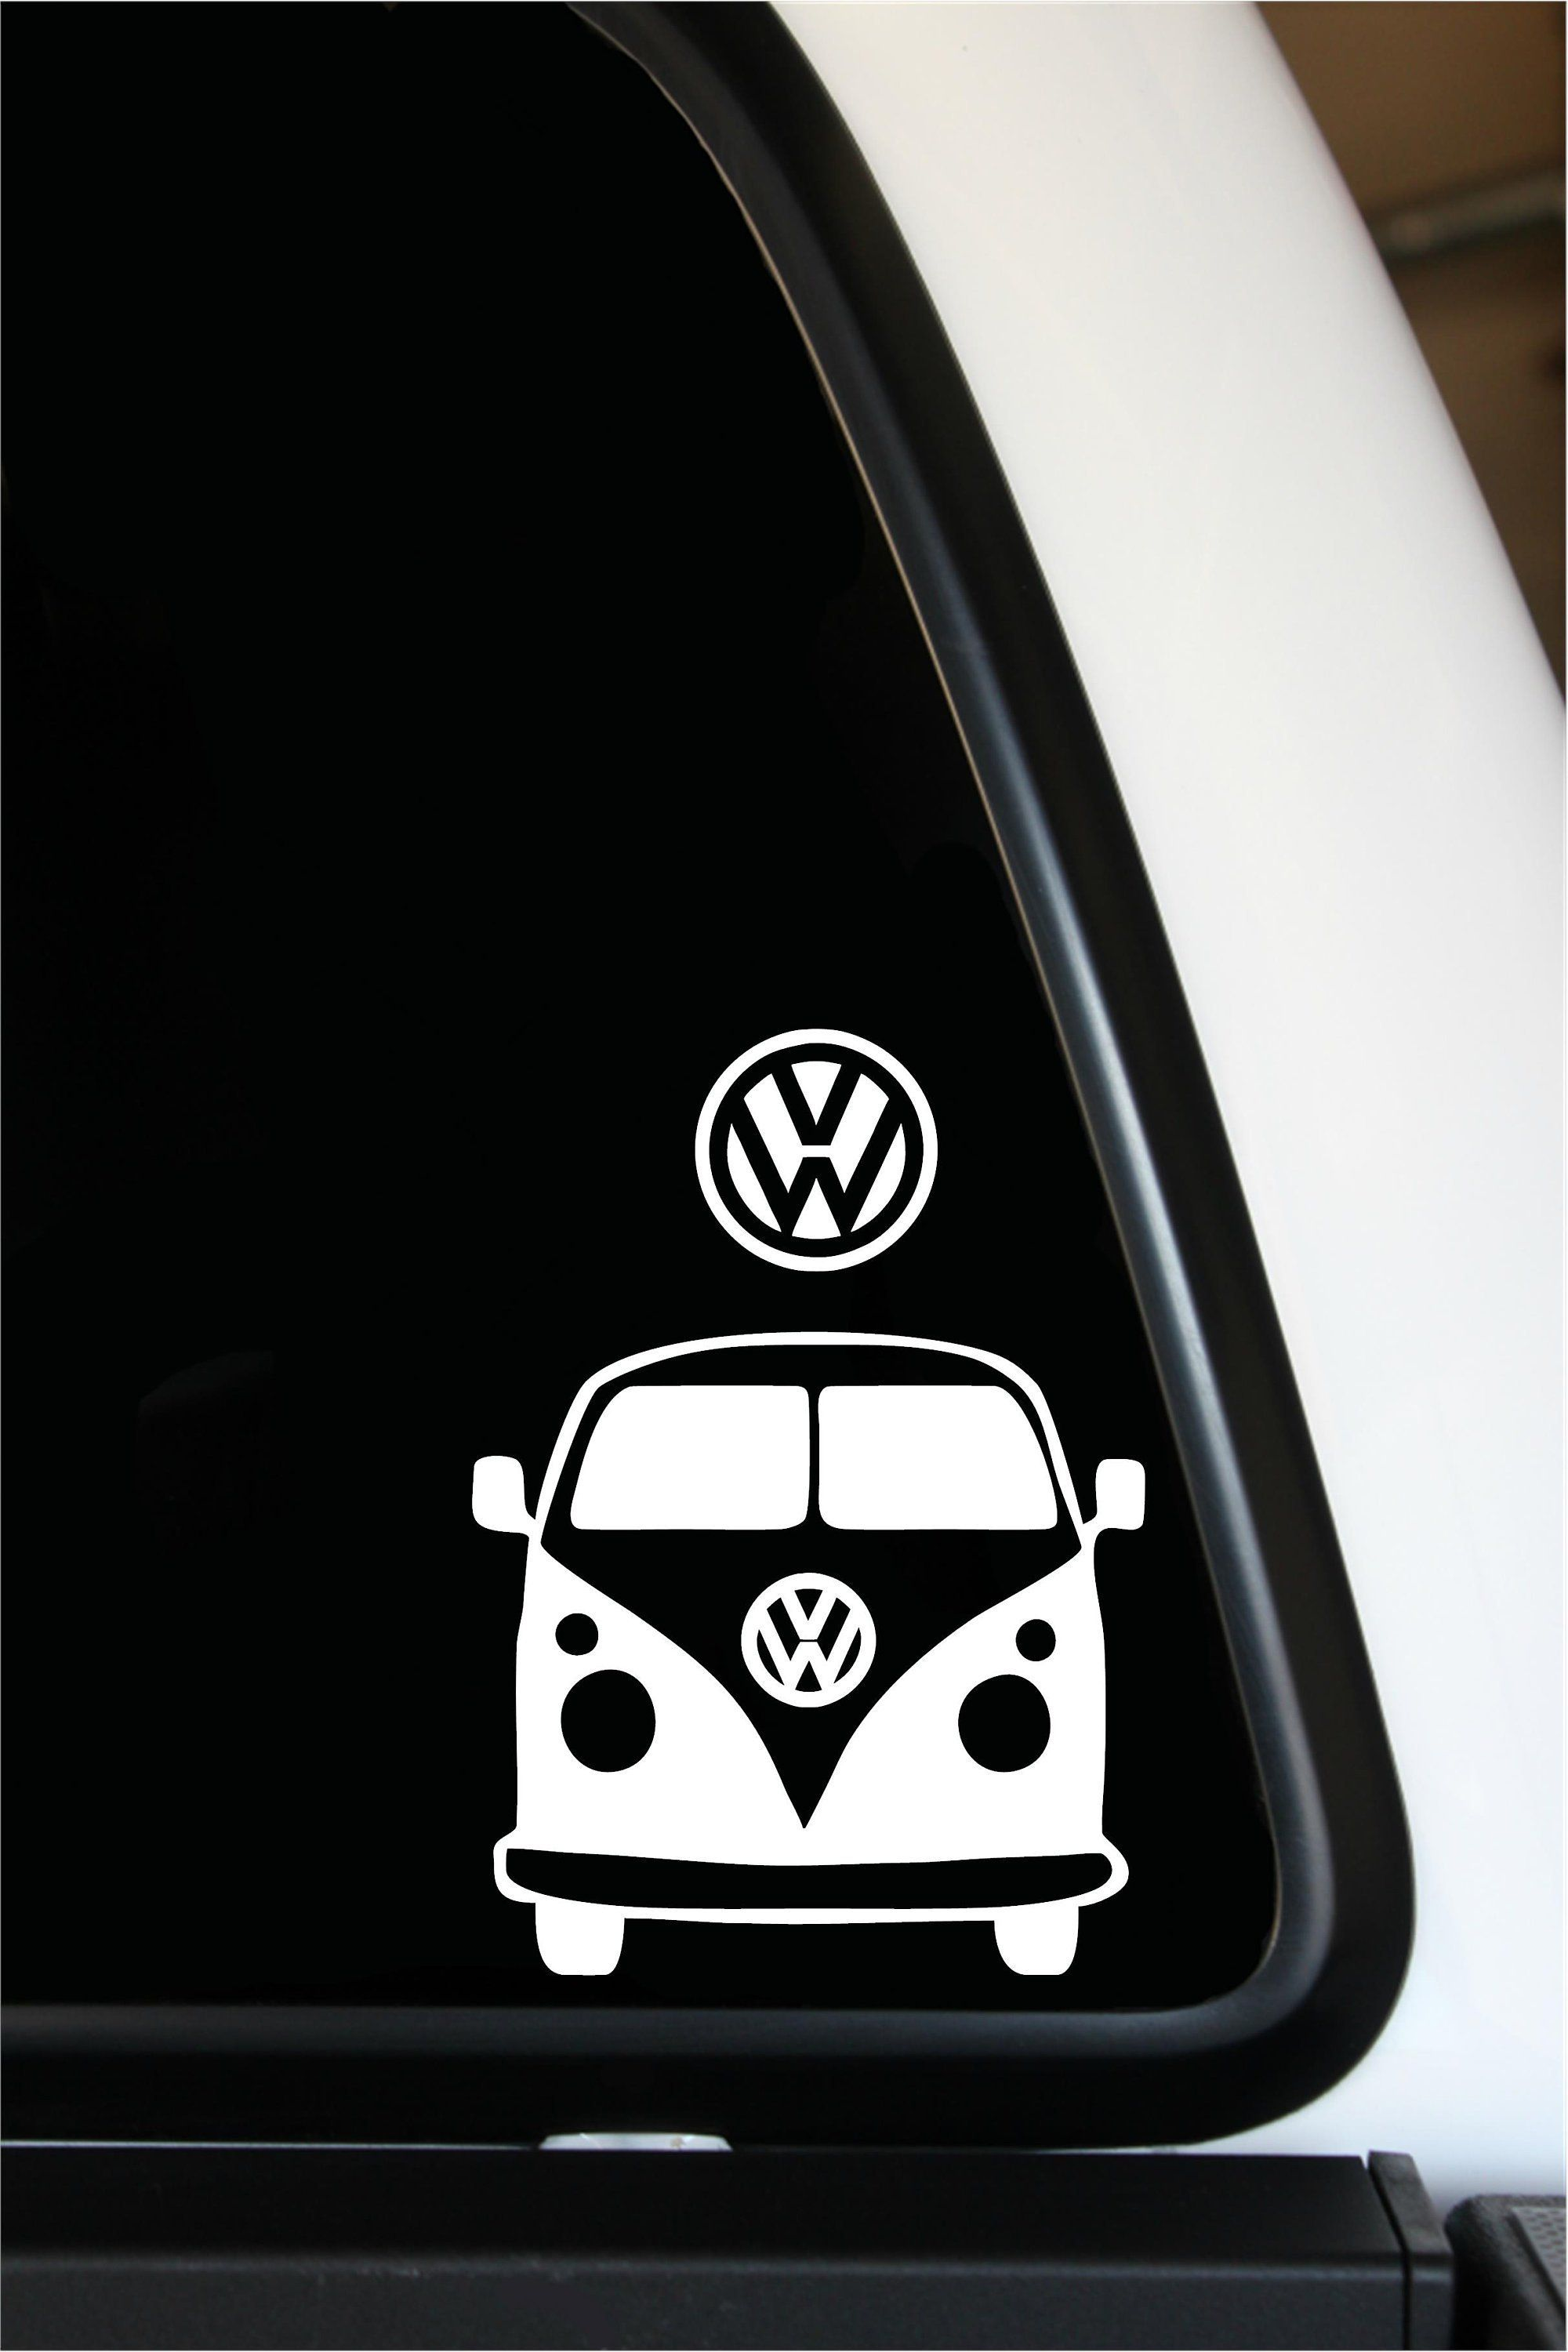 Vw bus 5 x 5 and vw 2 5 2 pack vinyl decal bumper sticker 3 99